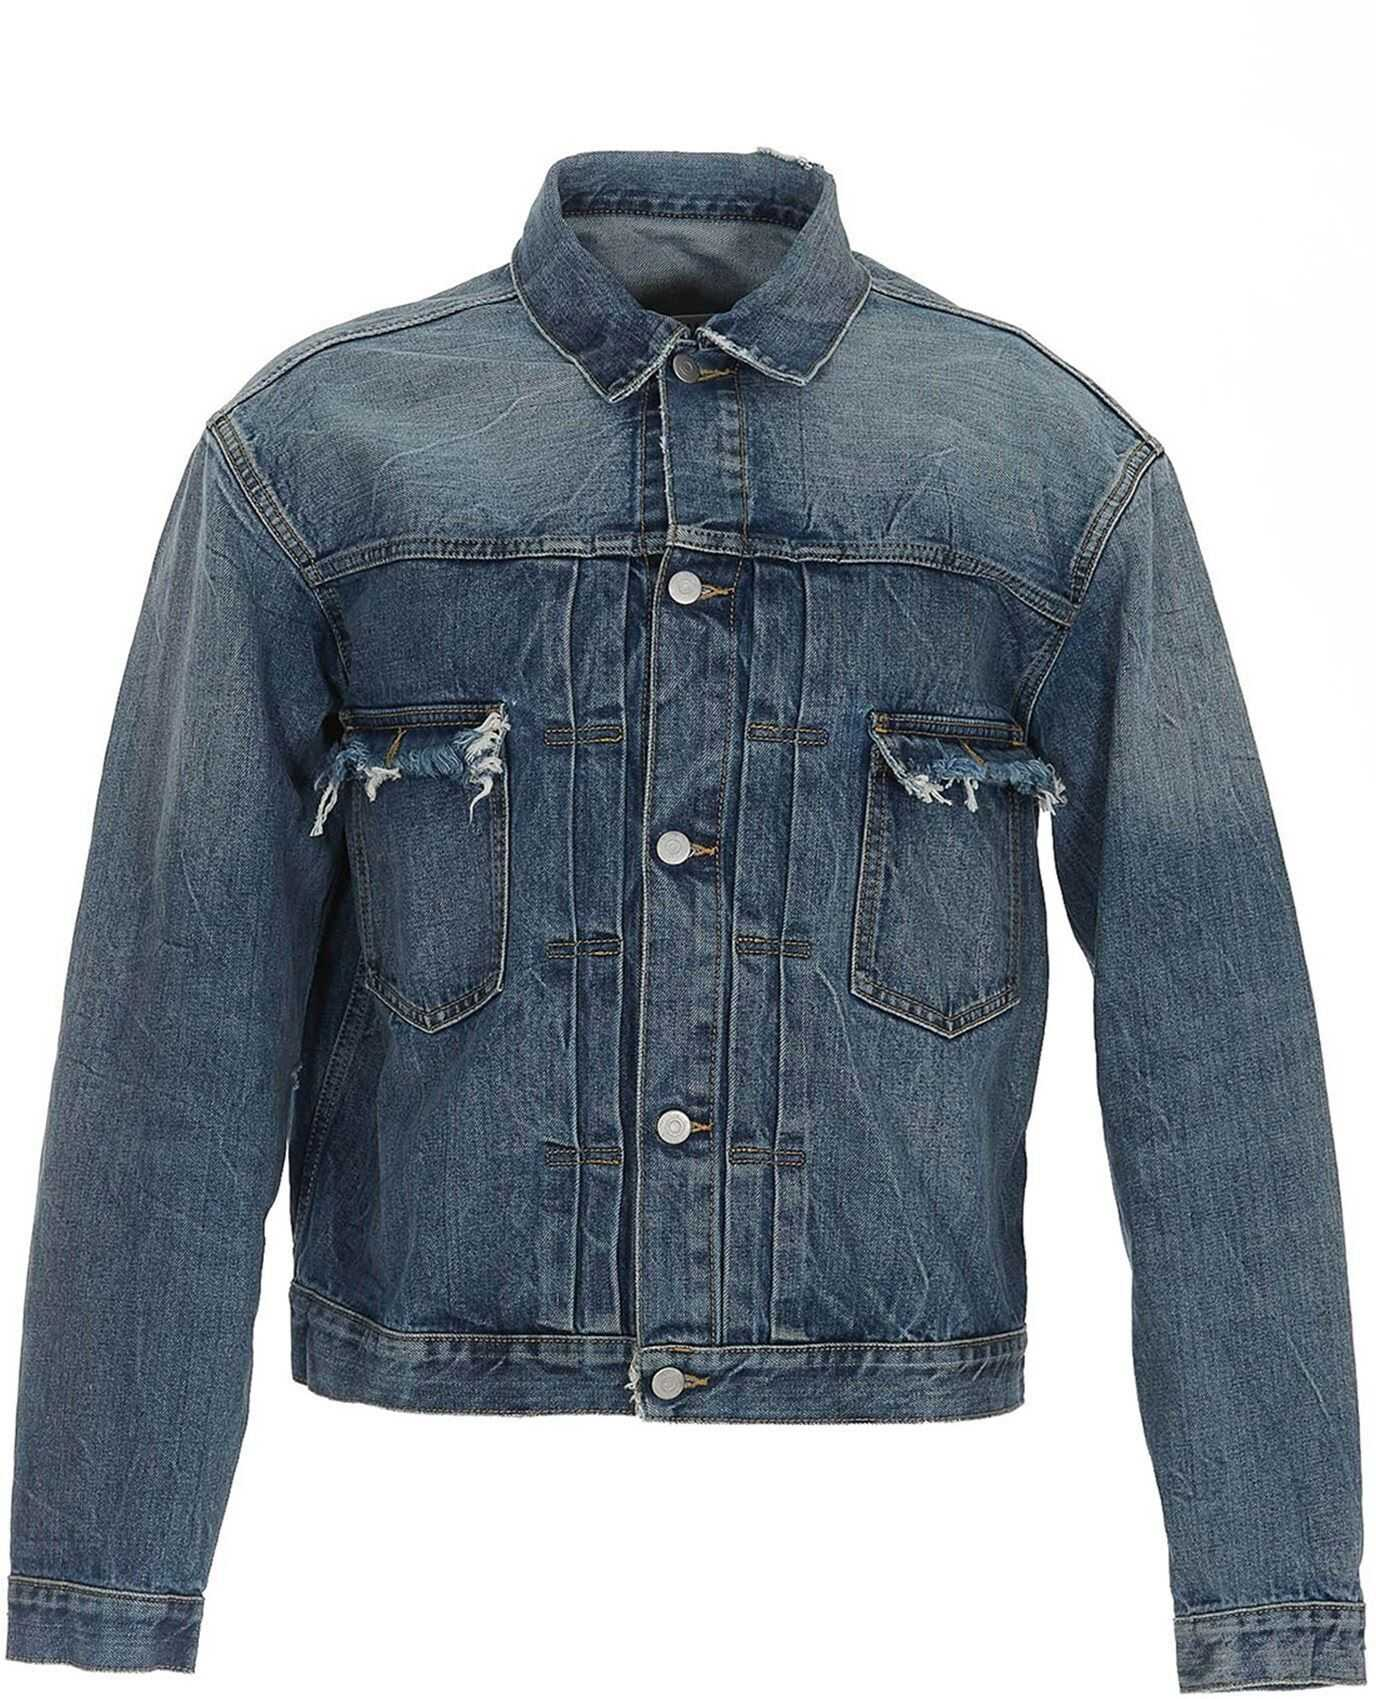 Maison Margiela Faded Denim Jacket In Blue Blue imagine